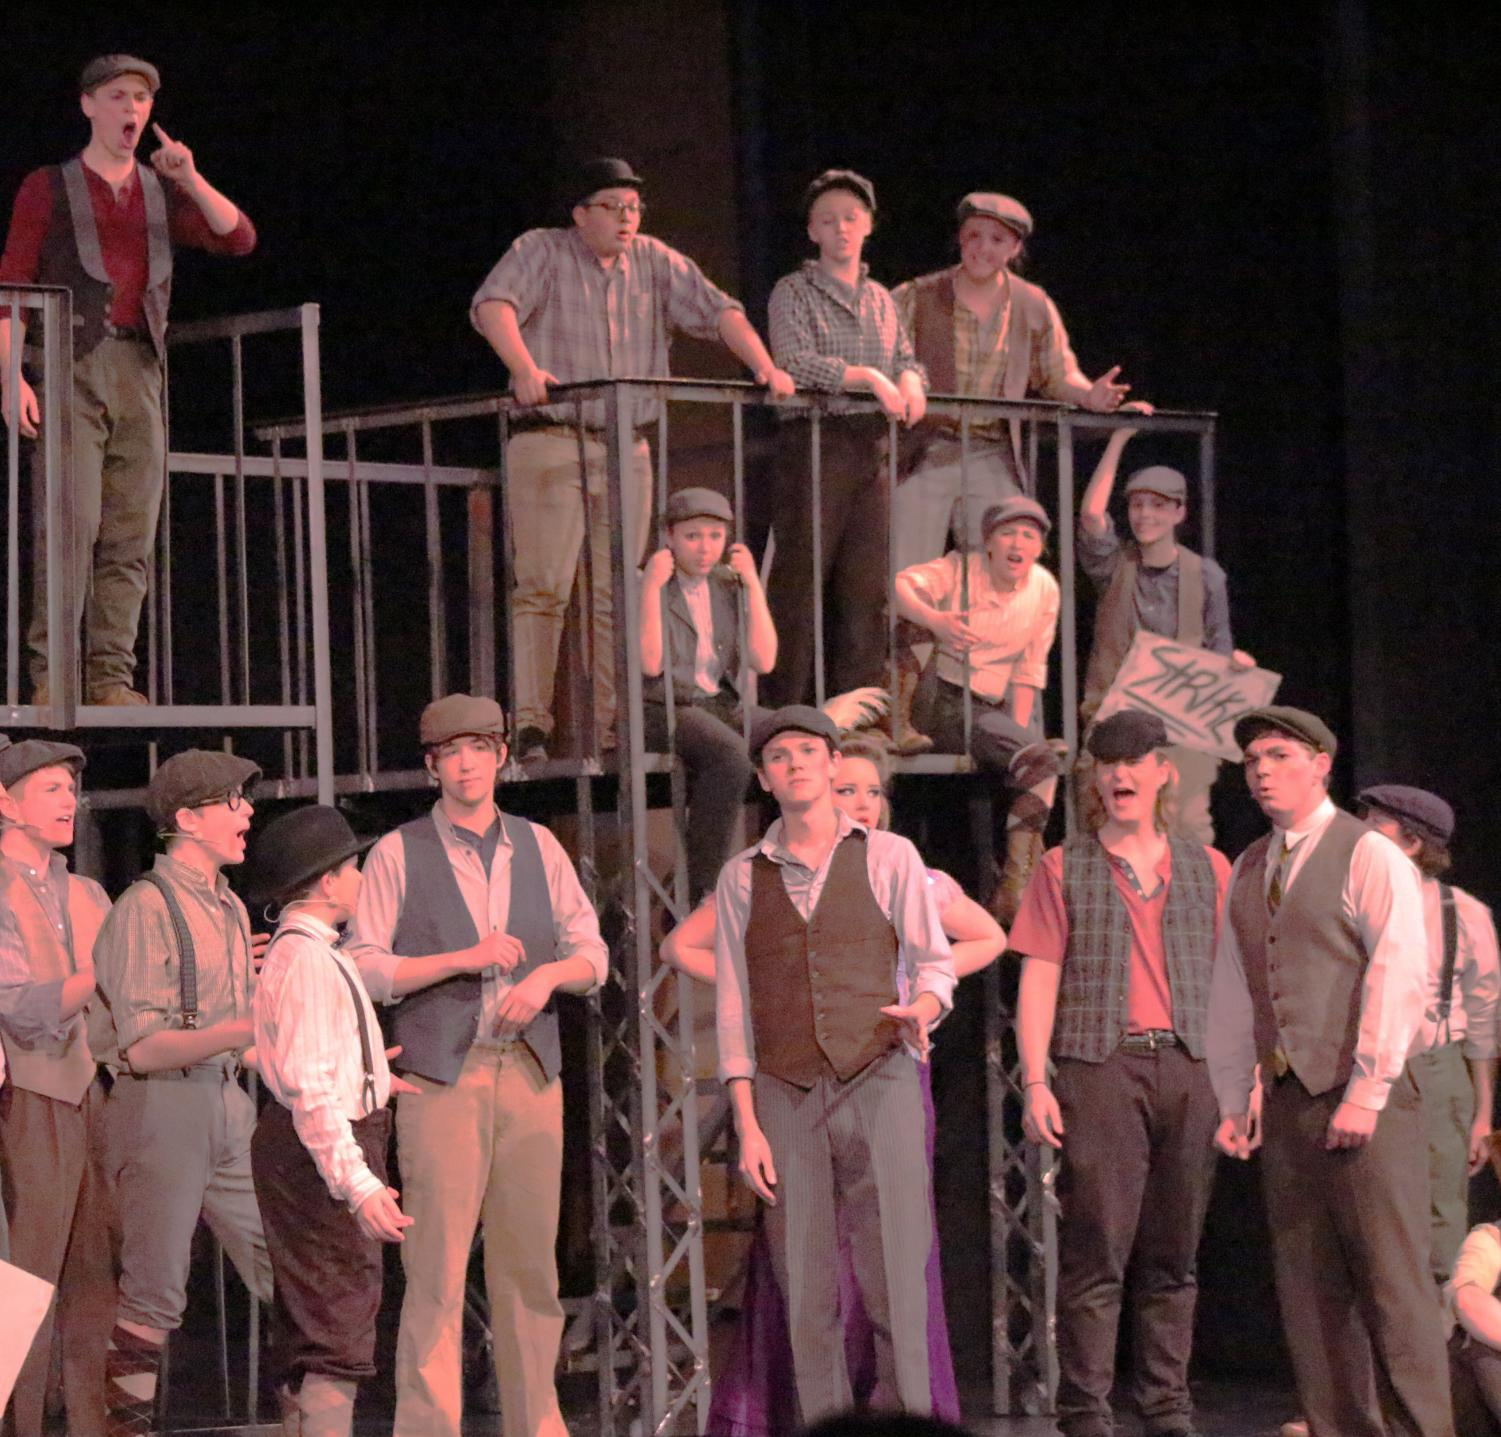 RETHINKING+YOUR+OPTIONS.+Jack+Kelly+rethinks+the+strike+and+discusses+an+alternative+option+with+the+newsies.